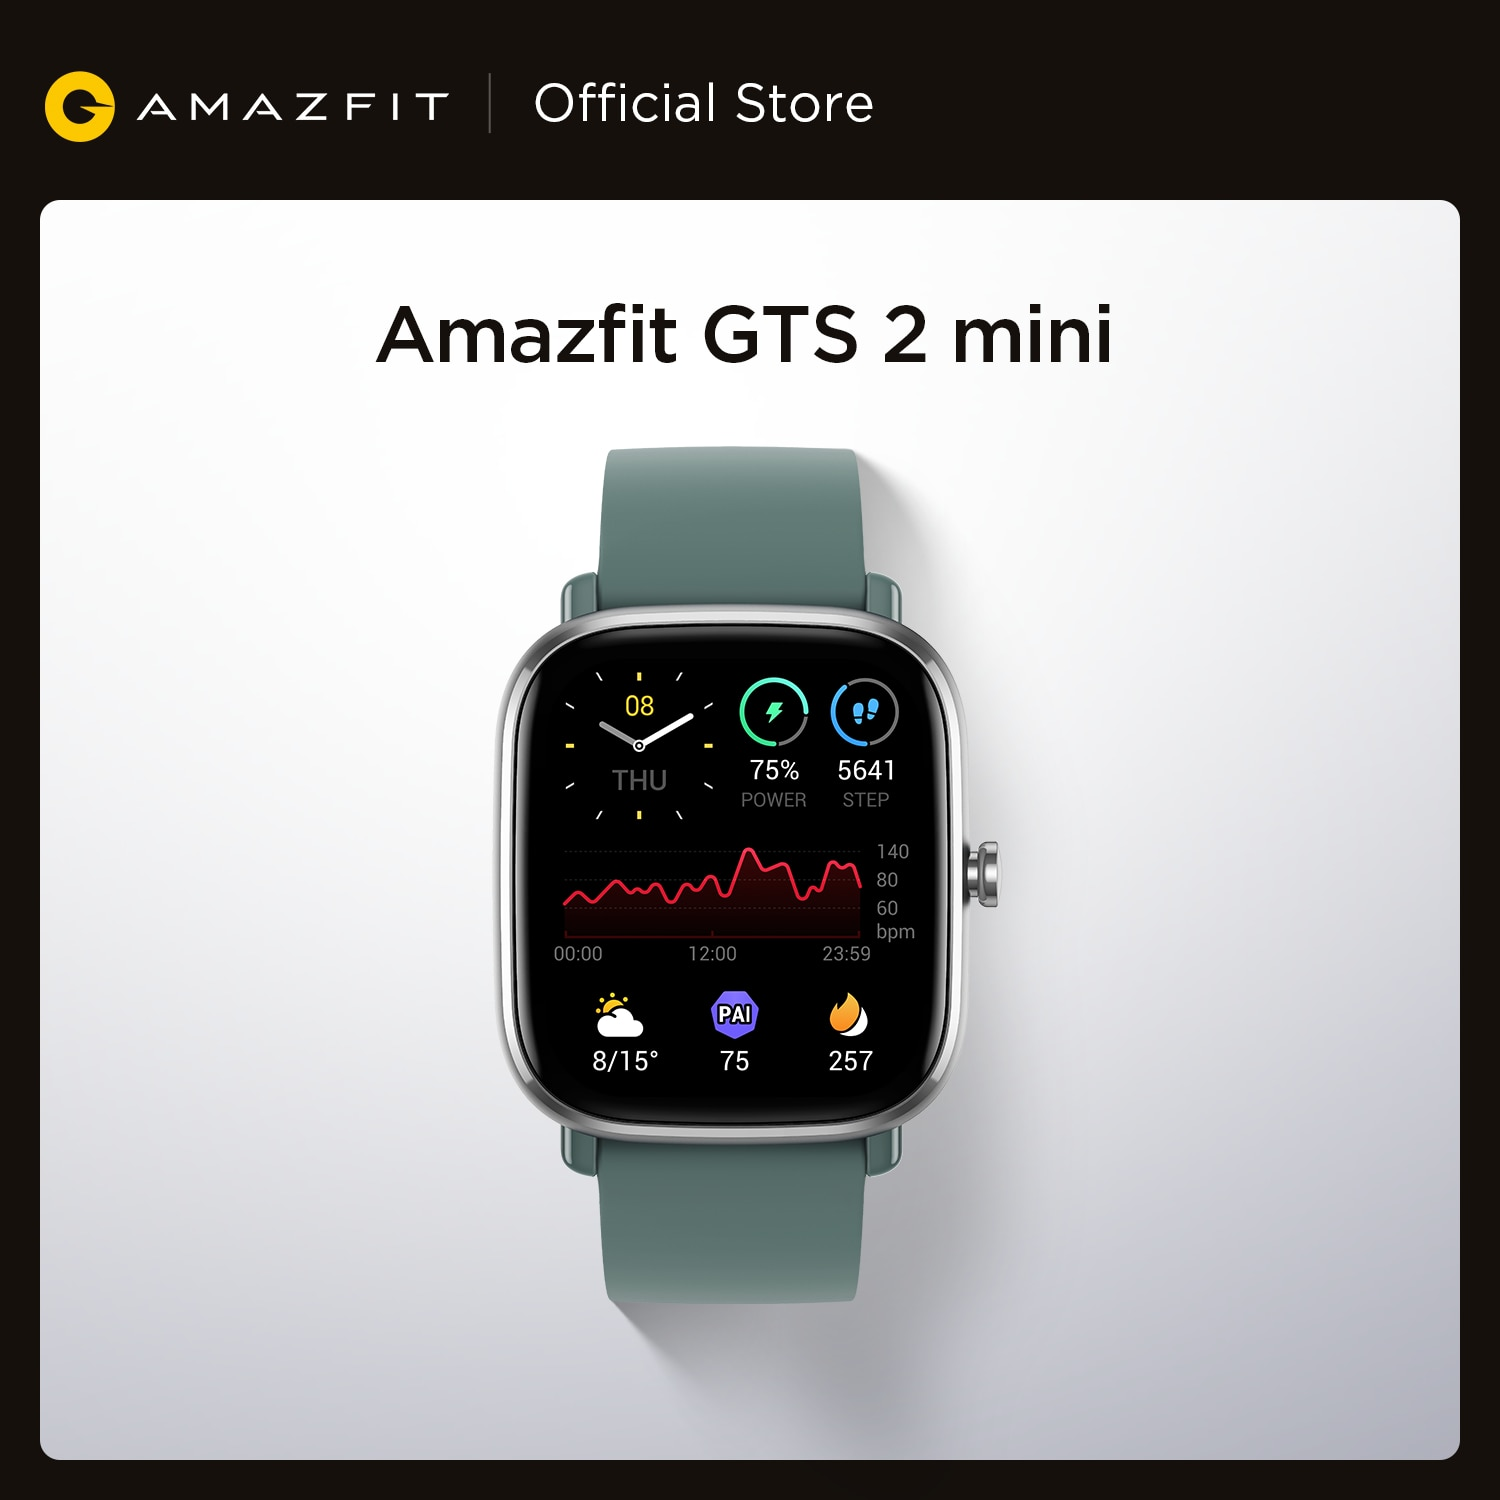 Global Version Amazfit GTS 2 Mini GPS Smartwatch 1.55'' 301 ppi AMOLED Display 70 Sports Modes Smart Watch For Android iOS Phone